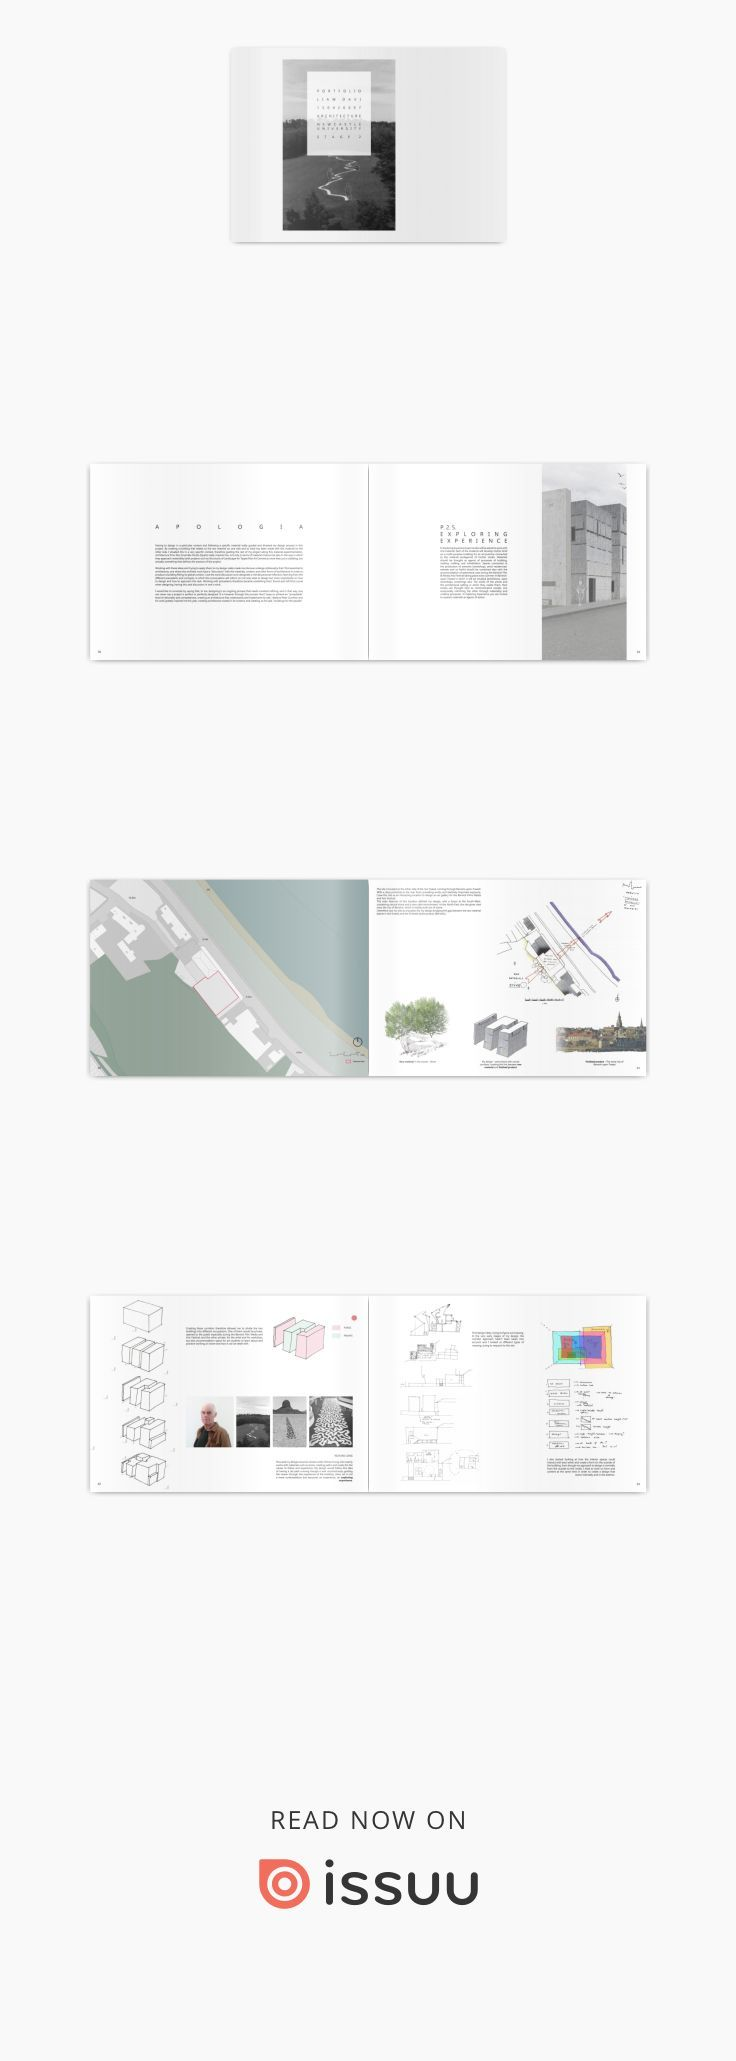 Newcastle University Stage 2 Architecture Portfolio  Second year of architecture at Newcastle University portfolio, presenting design and non-design works over the course of the 2016-2017 year.